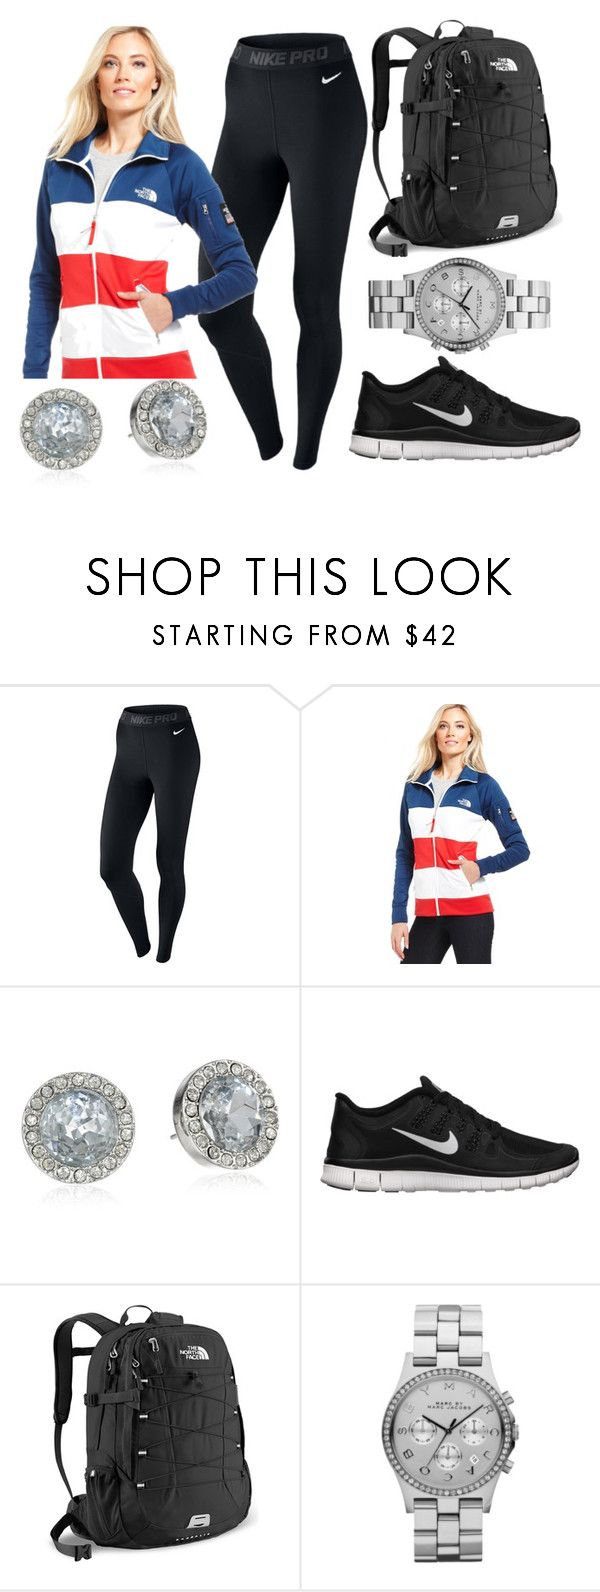 """""""School outfit"""" by stylesbowtie ❤ liked on Polyvore featuring NIKE, The North Face, Juicy Couture and Marc by Marc Jacobs"""